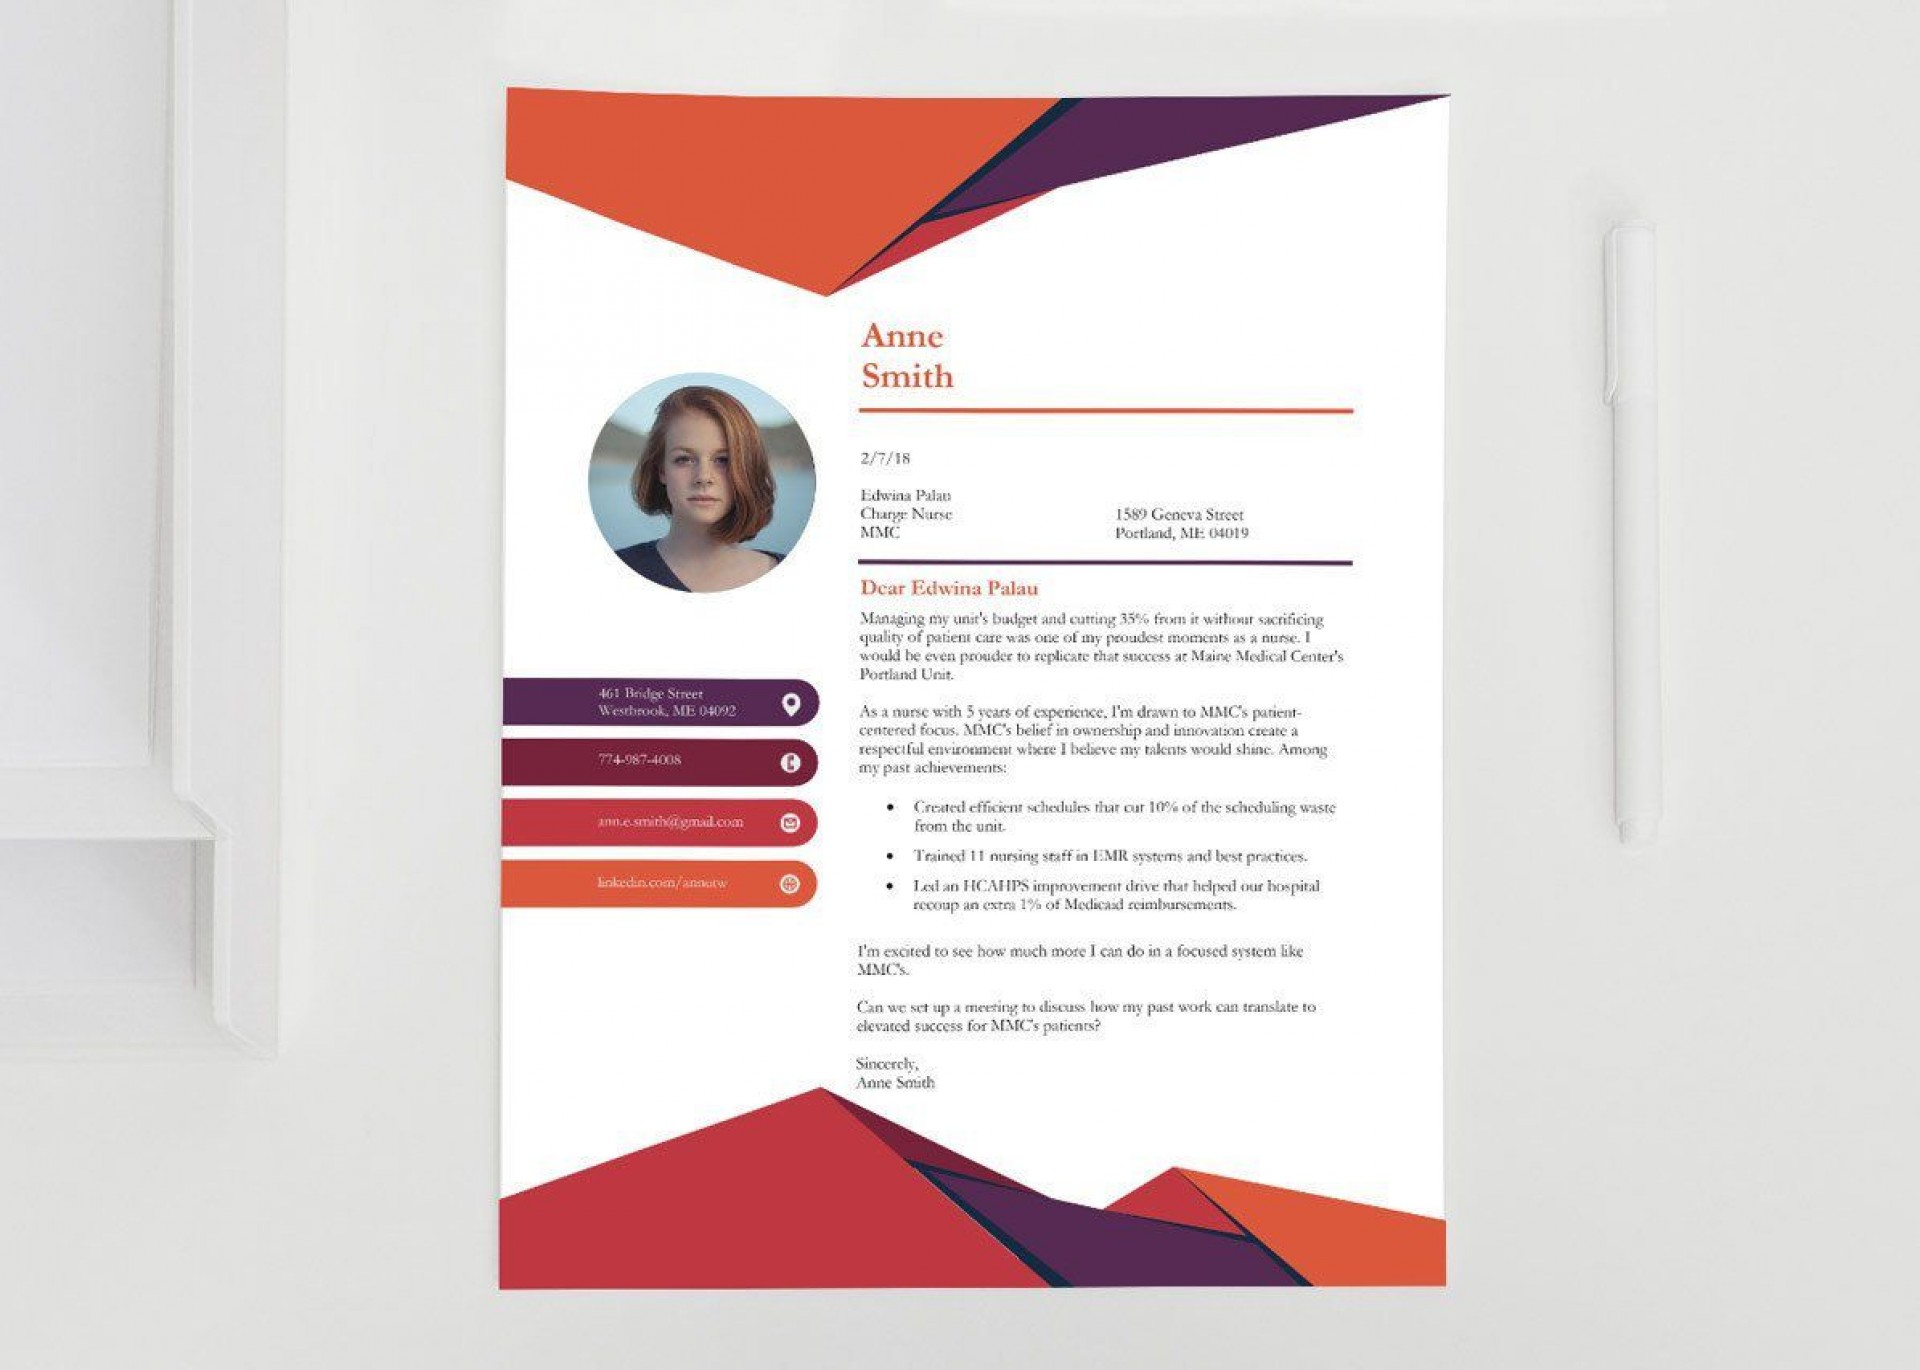 001 Impressive Download Cover Letter Template In Microsoft Word Highest Clarity  Free Creative Resume1920